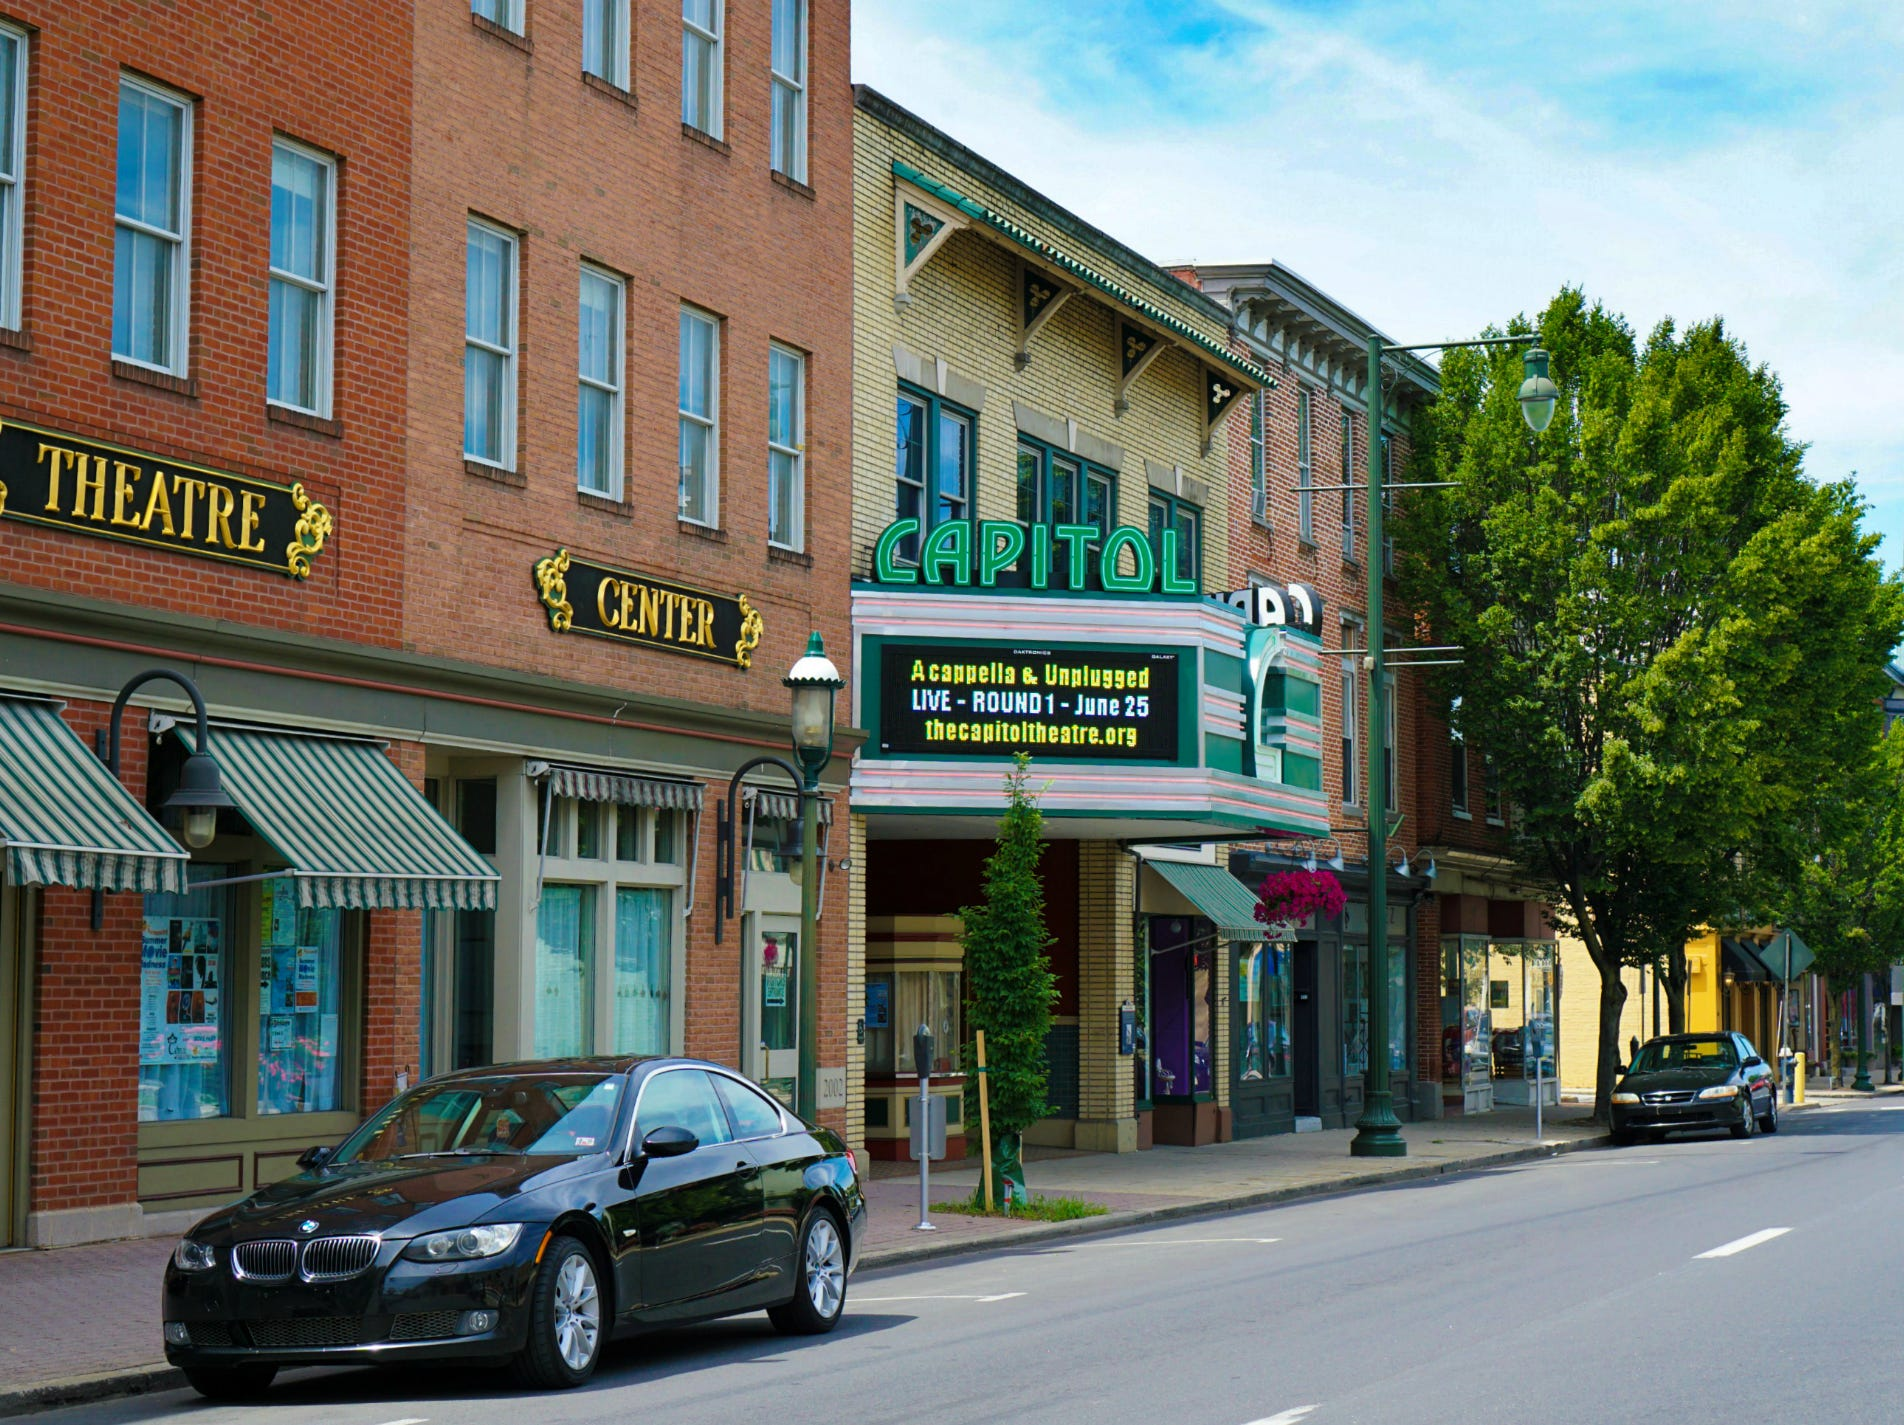 The Capitol Theatre has been a landmark of downtown Chambersburg since 1927.